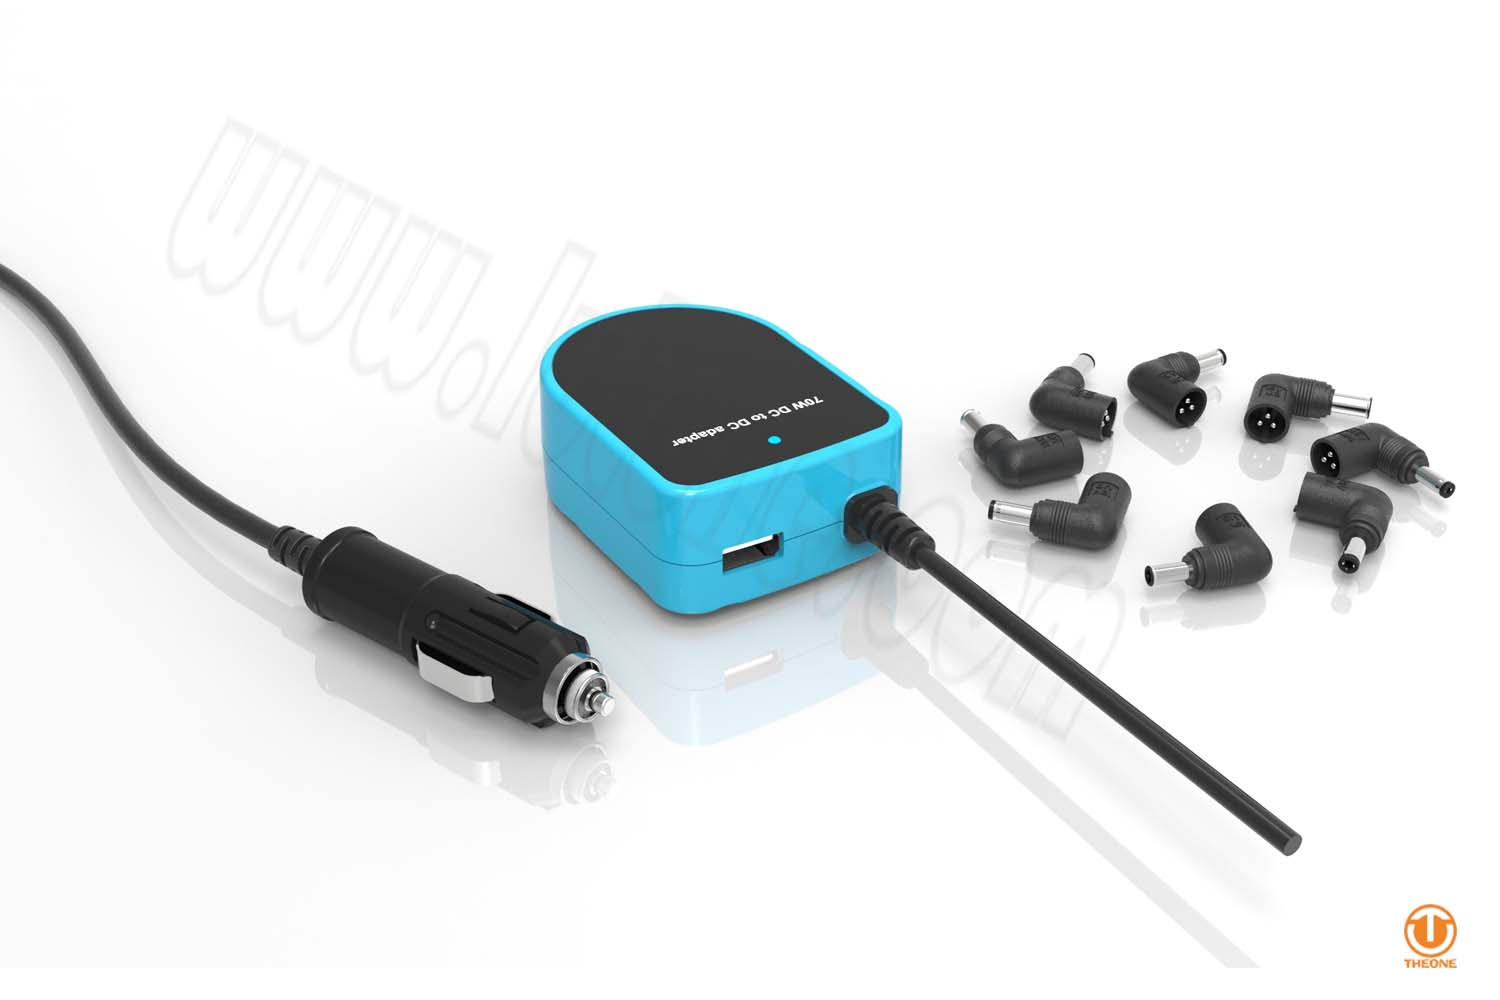 ta07c2-1 car adapter with usb